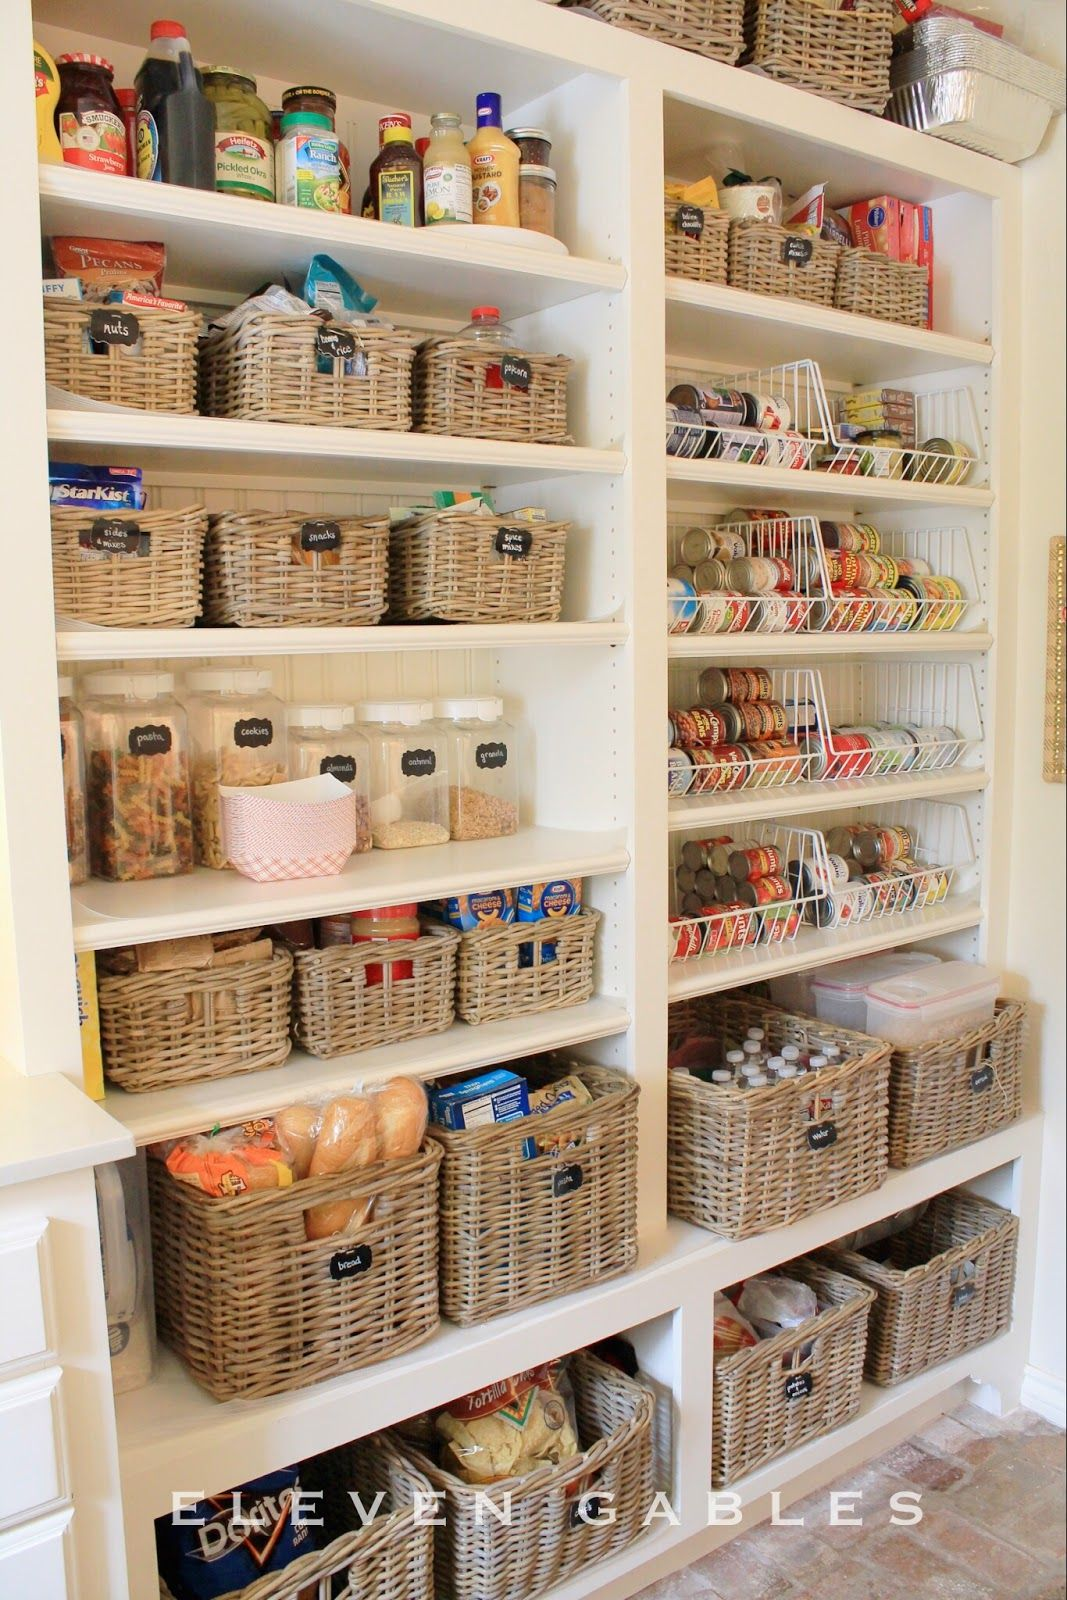 If finding something in your pantry is a tedious task then it means it needs to be organanized with some smart storage solutions. & Pin by MaryJane Moore on Cleaning/Organization/Storage | Pinterest ...